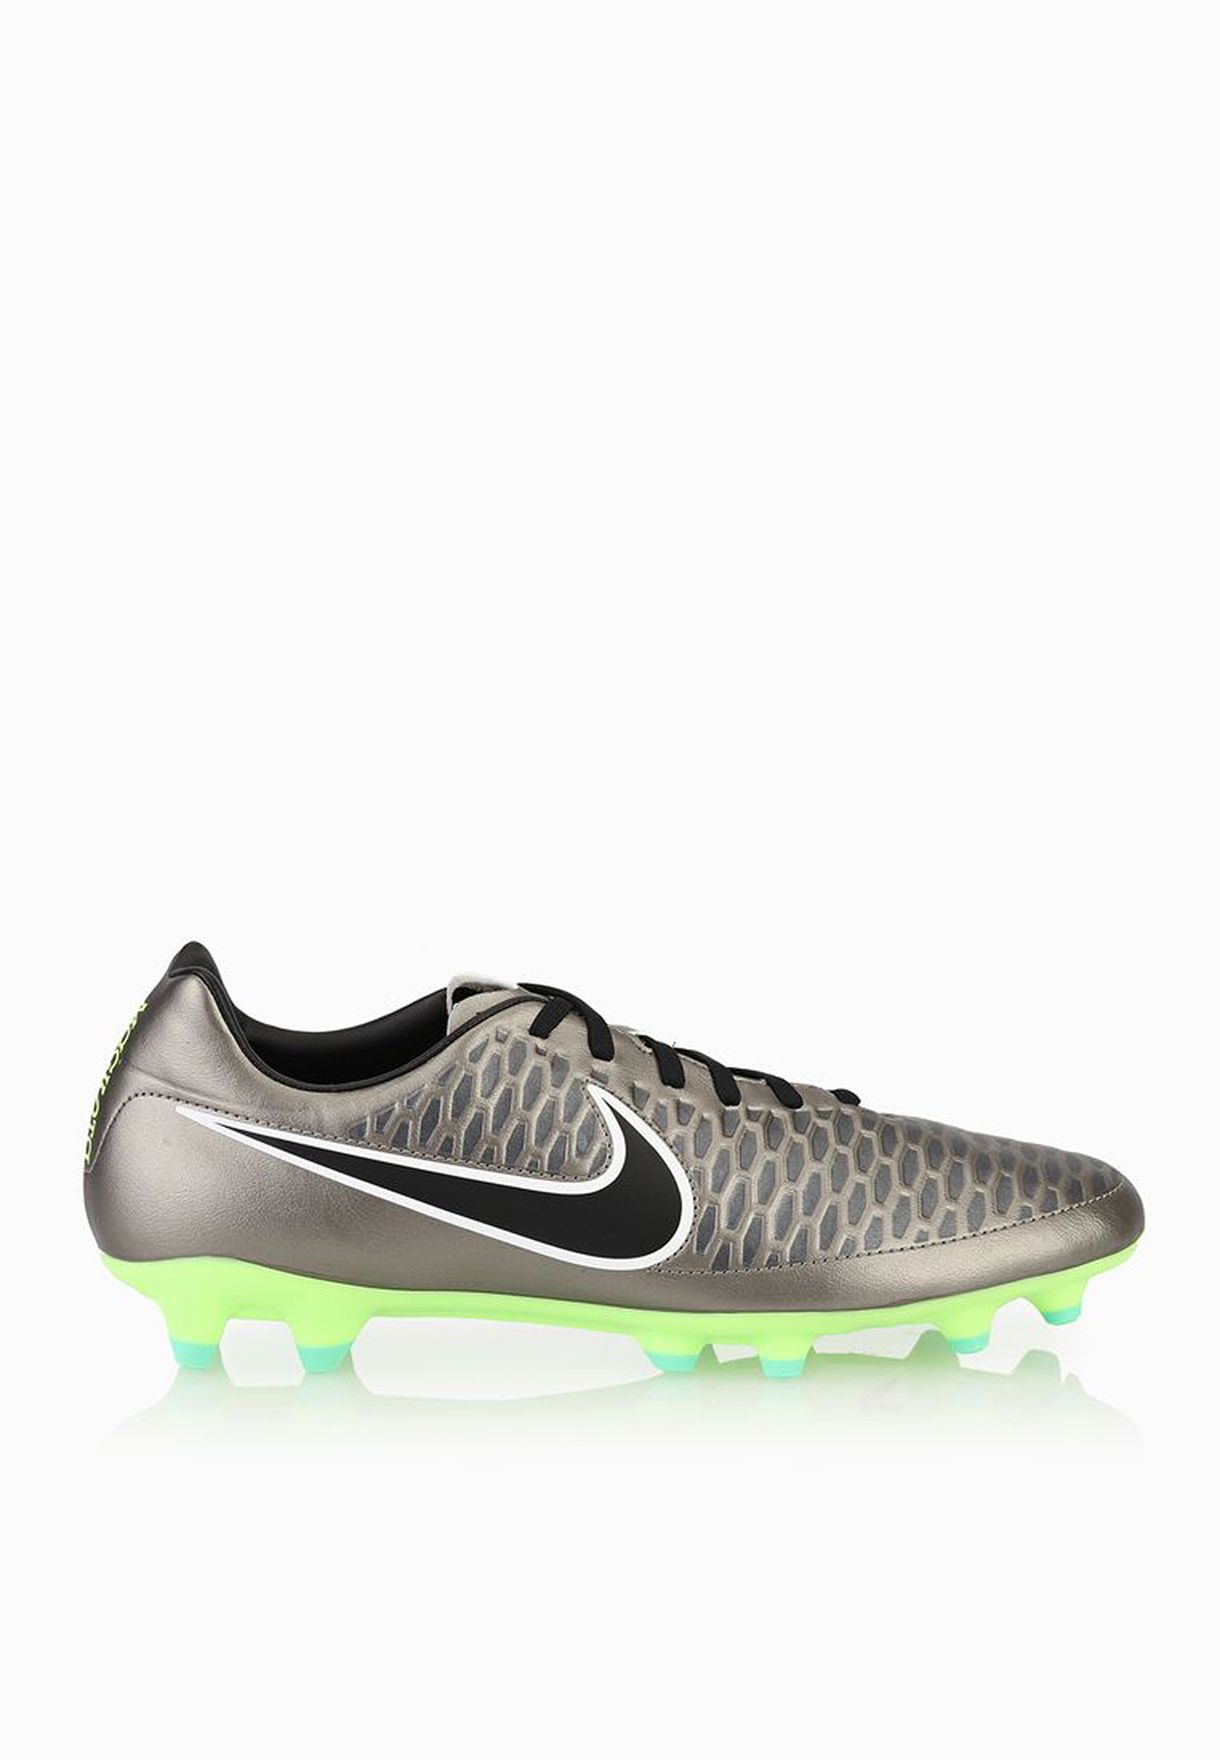 4e71272533f ... top quality shop nike grey magista onda fg 651543 010 for men in uae  ni727sh91pci 88f16